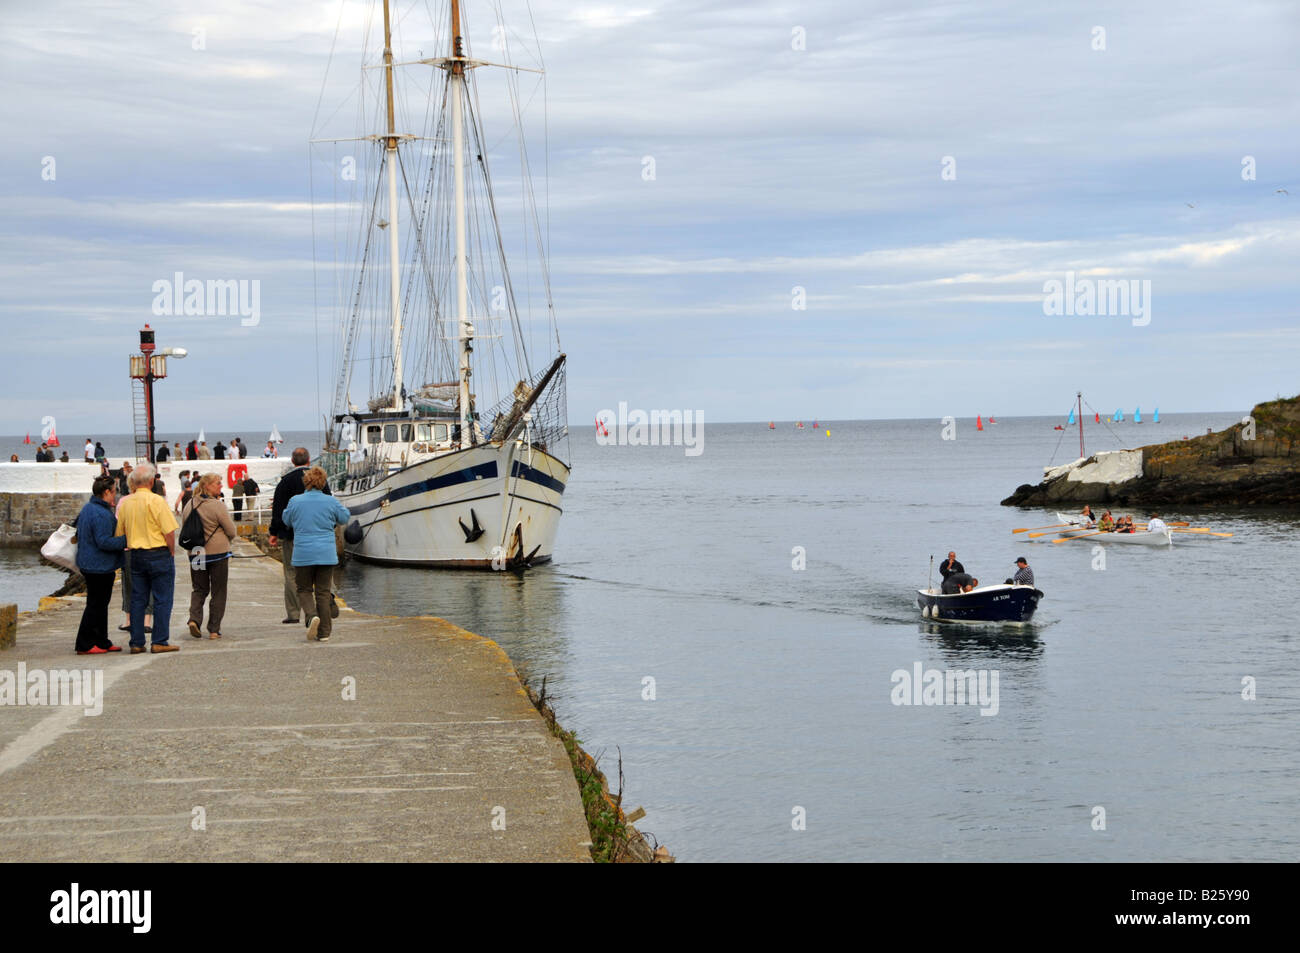 17/07/2008 Pic By Sean Hernon The Next Wave alongside the Banjo Peir East Looe Cornwall. - Stock Image